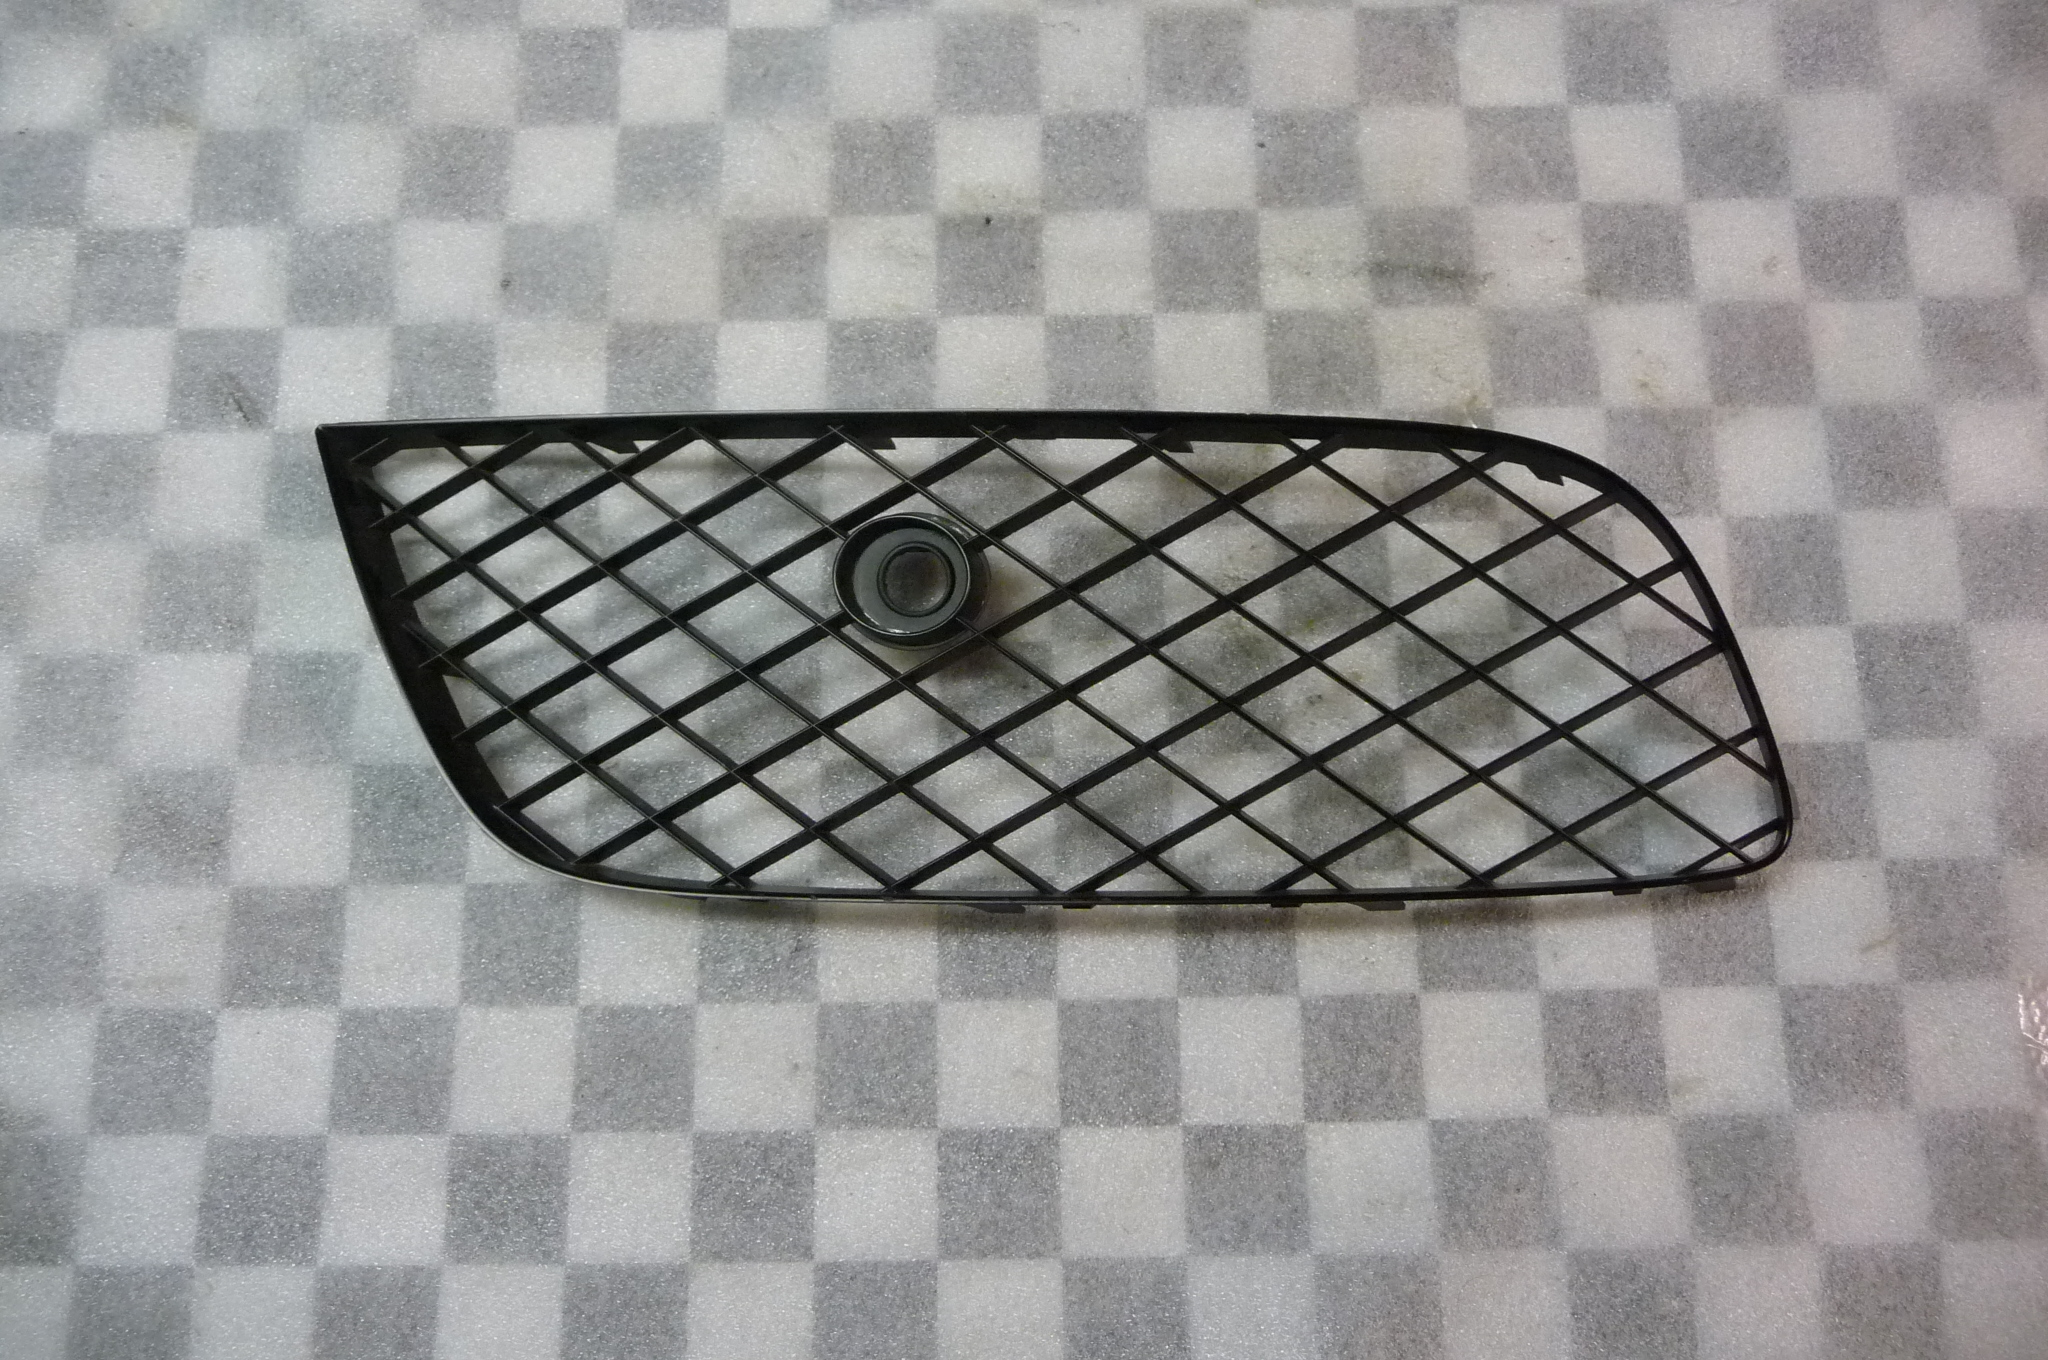 Bentley GT GTC Lower Bumper Grill Grille Front Driver Left  3W3807647C  - Used Auto Parts Store | LA Global Parts